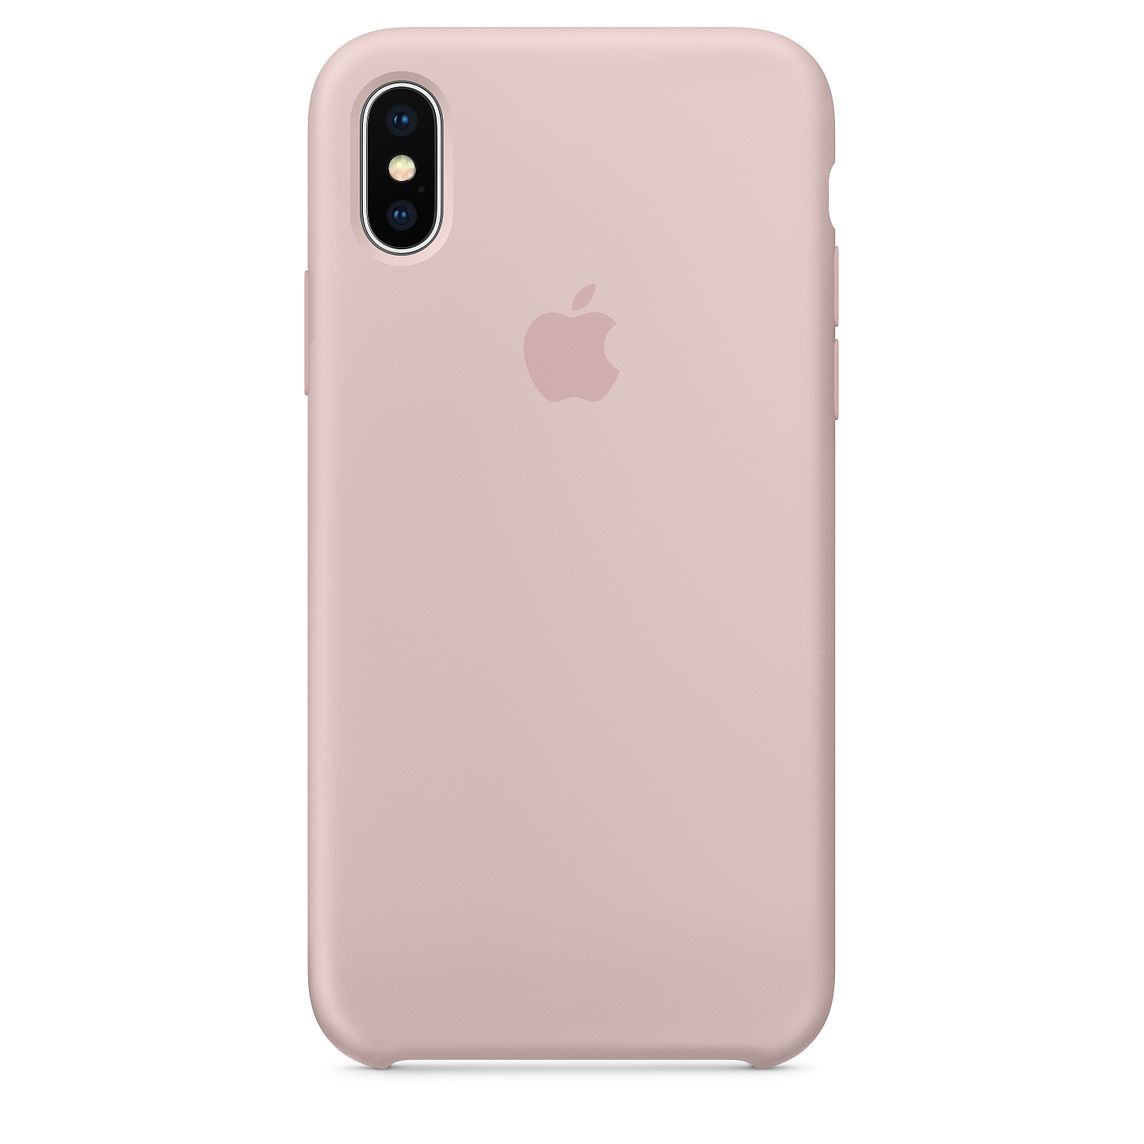 reputable site 582ec ab5df iPhone X Silicone Case – Pink Sand (high copy)